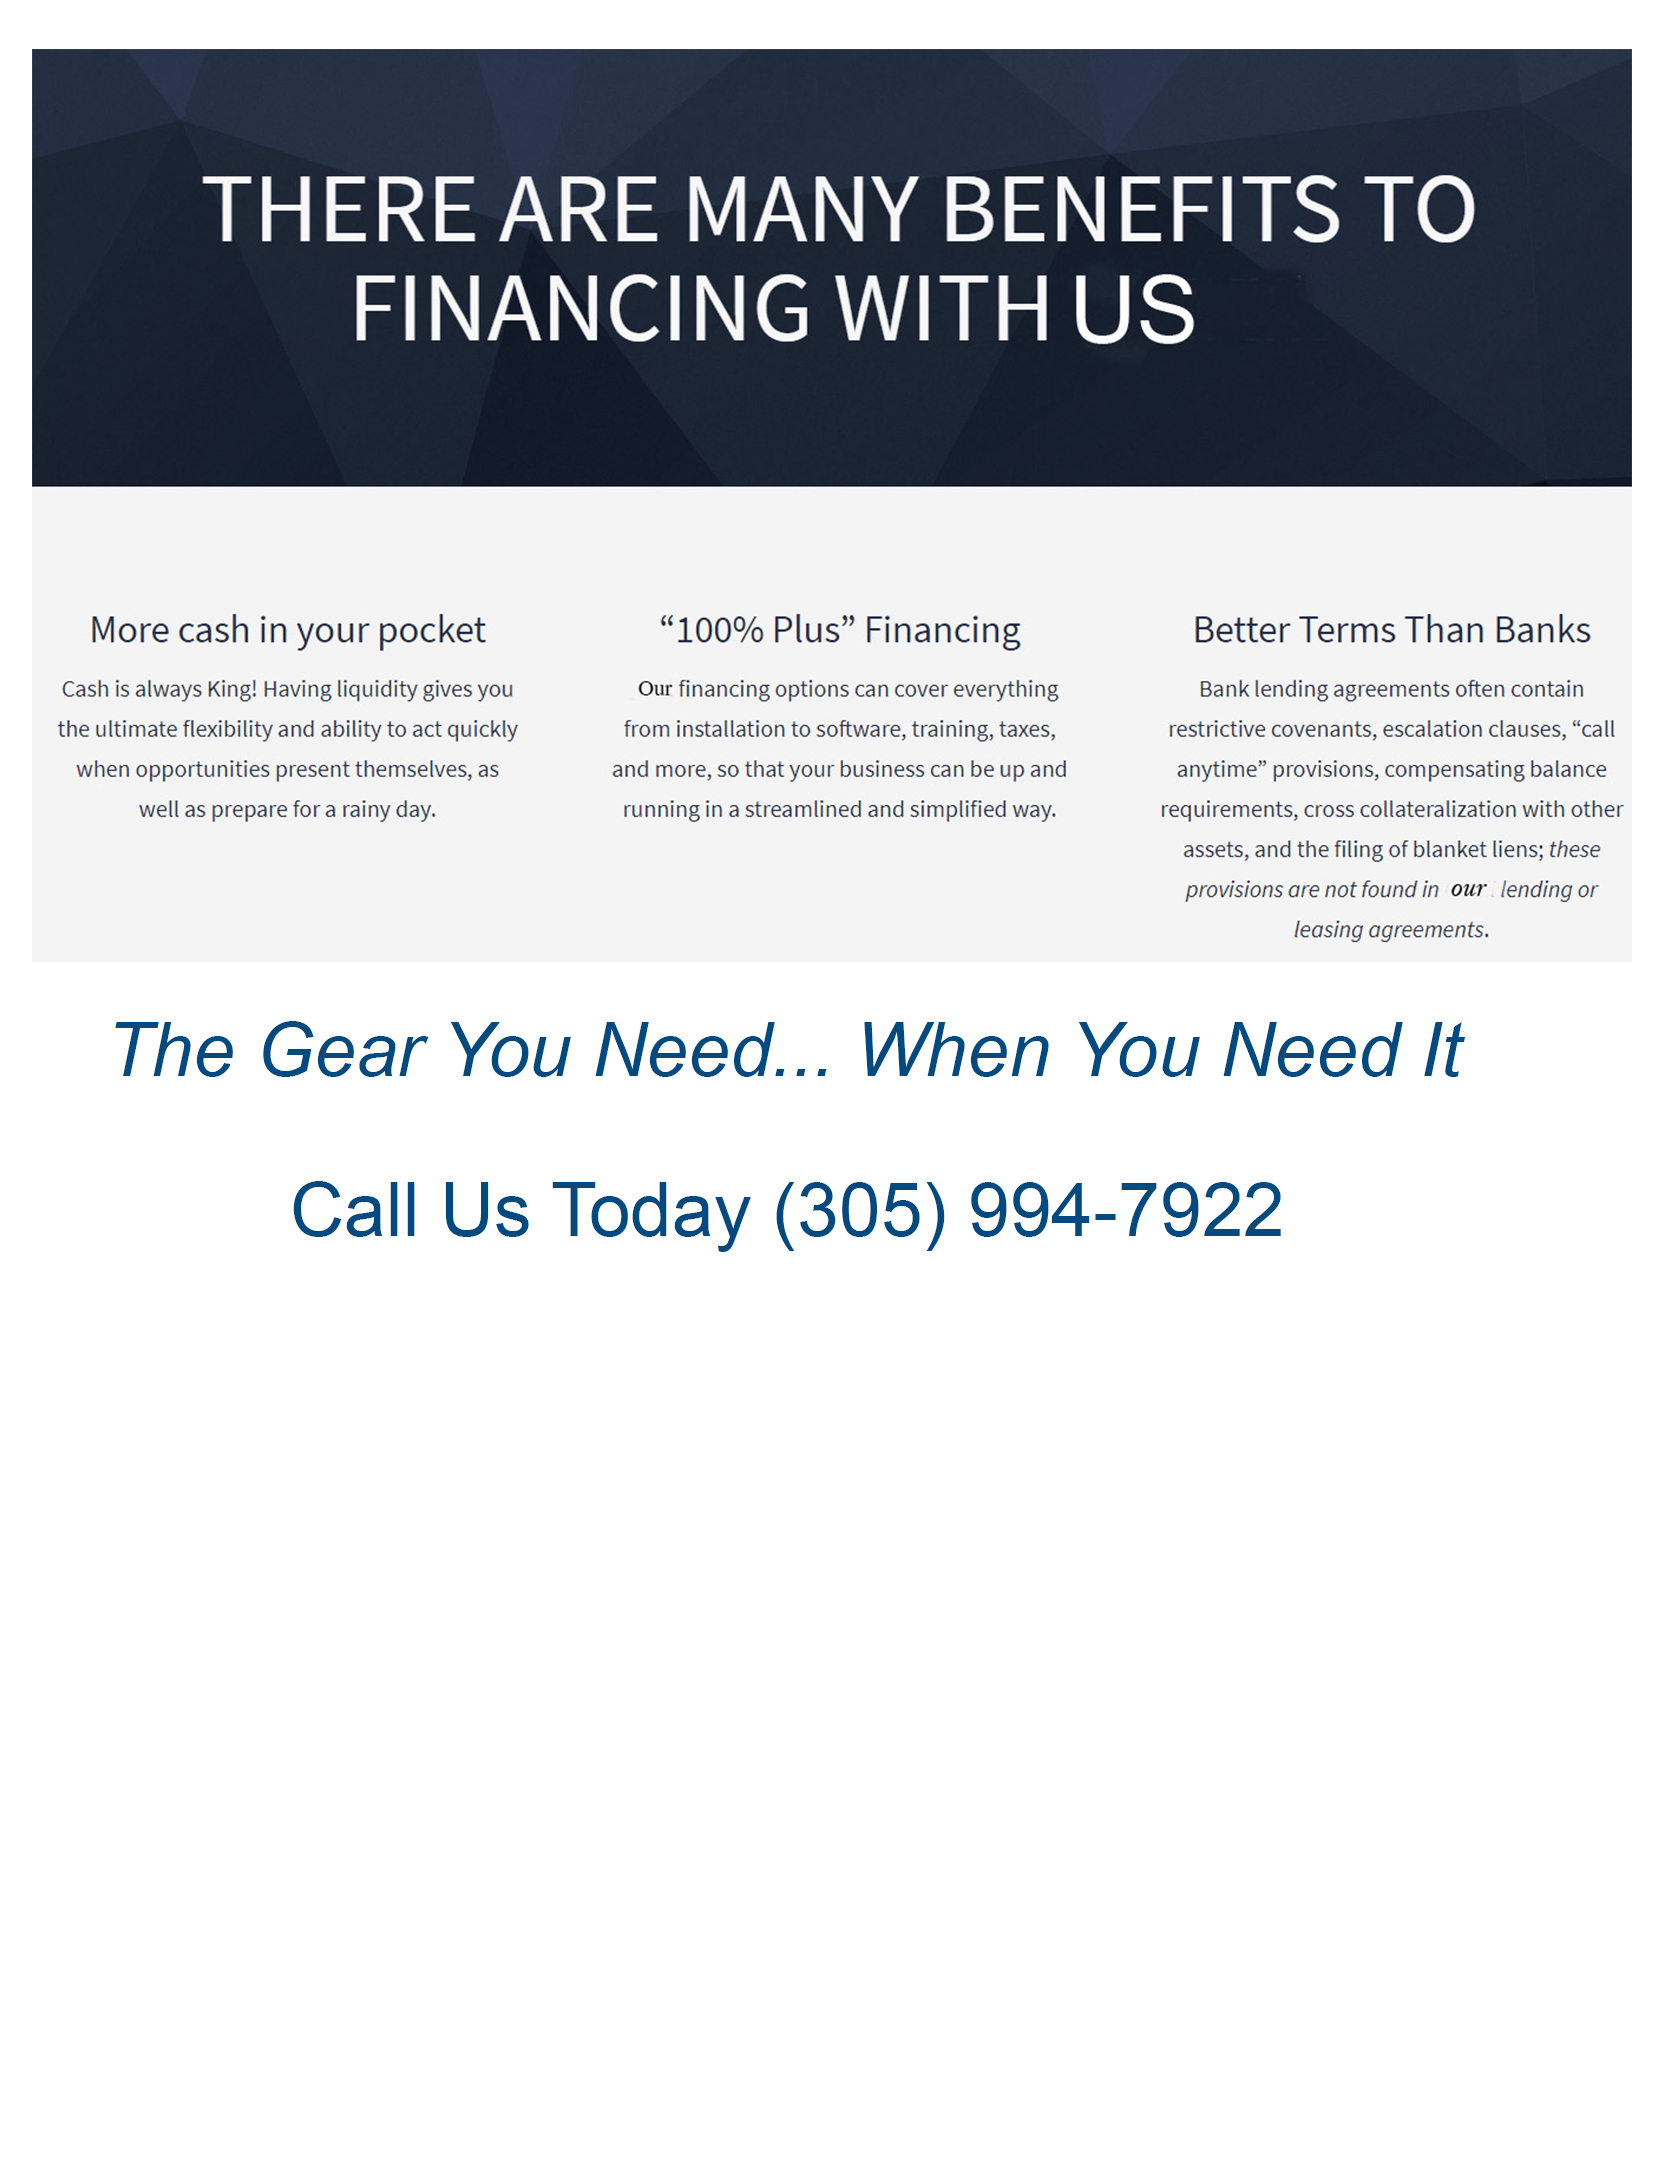 finanacing-page-benefits-from-quail-slogan-call-3.jpg